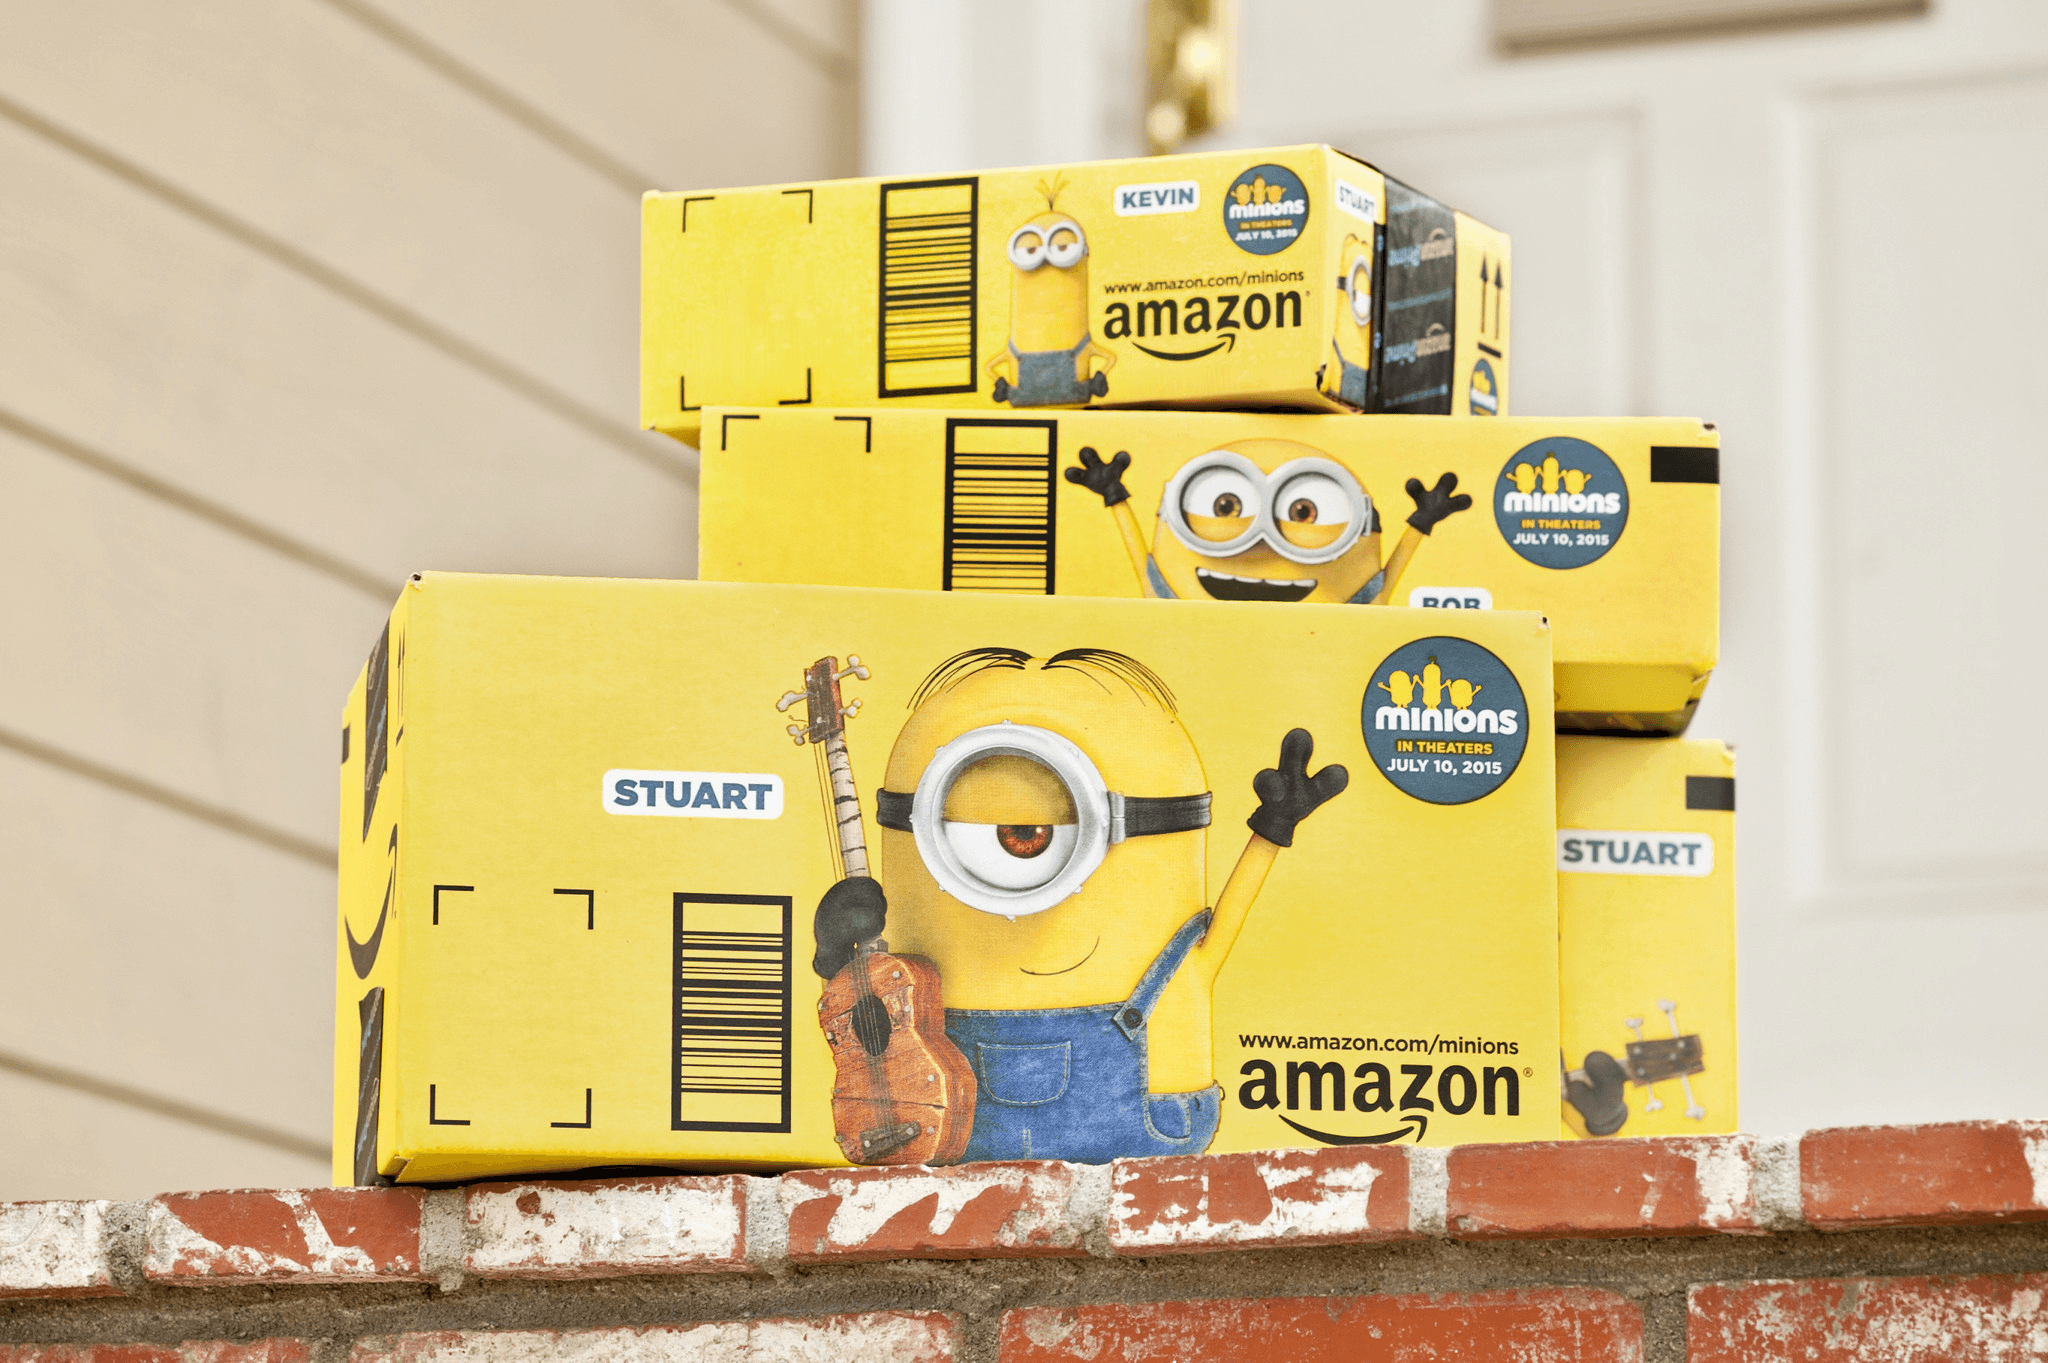 Cardboard Box Printed Design - Amazon Minions